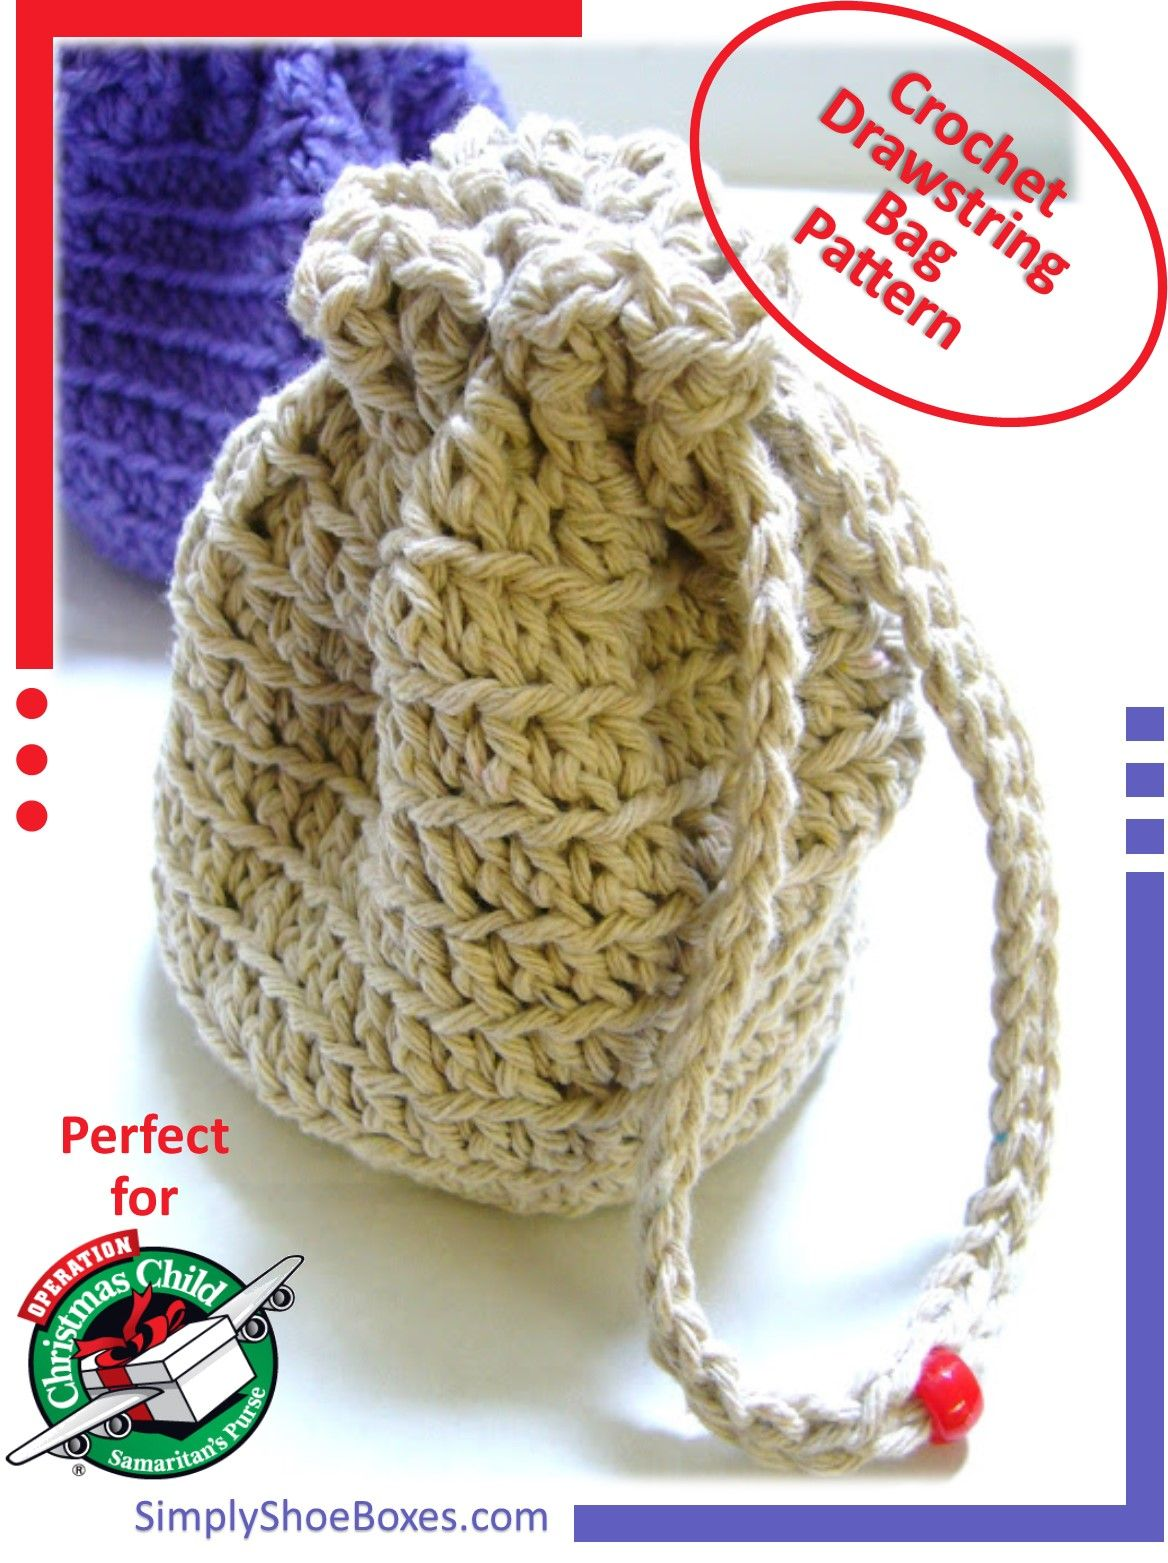 Simple Crocheted Stand-up, Drawstring Bag Instructions | Pinterest ...